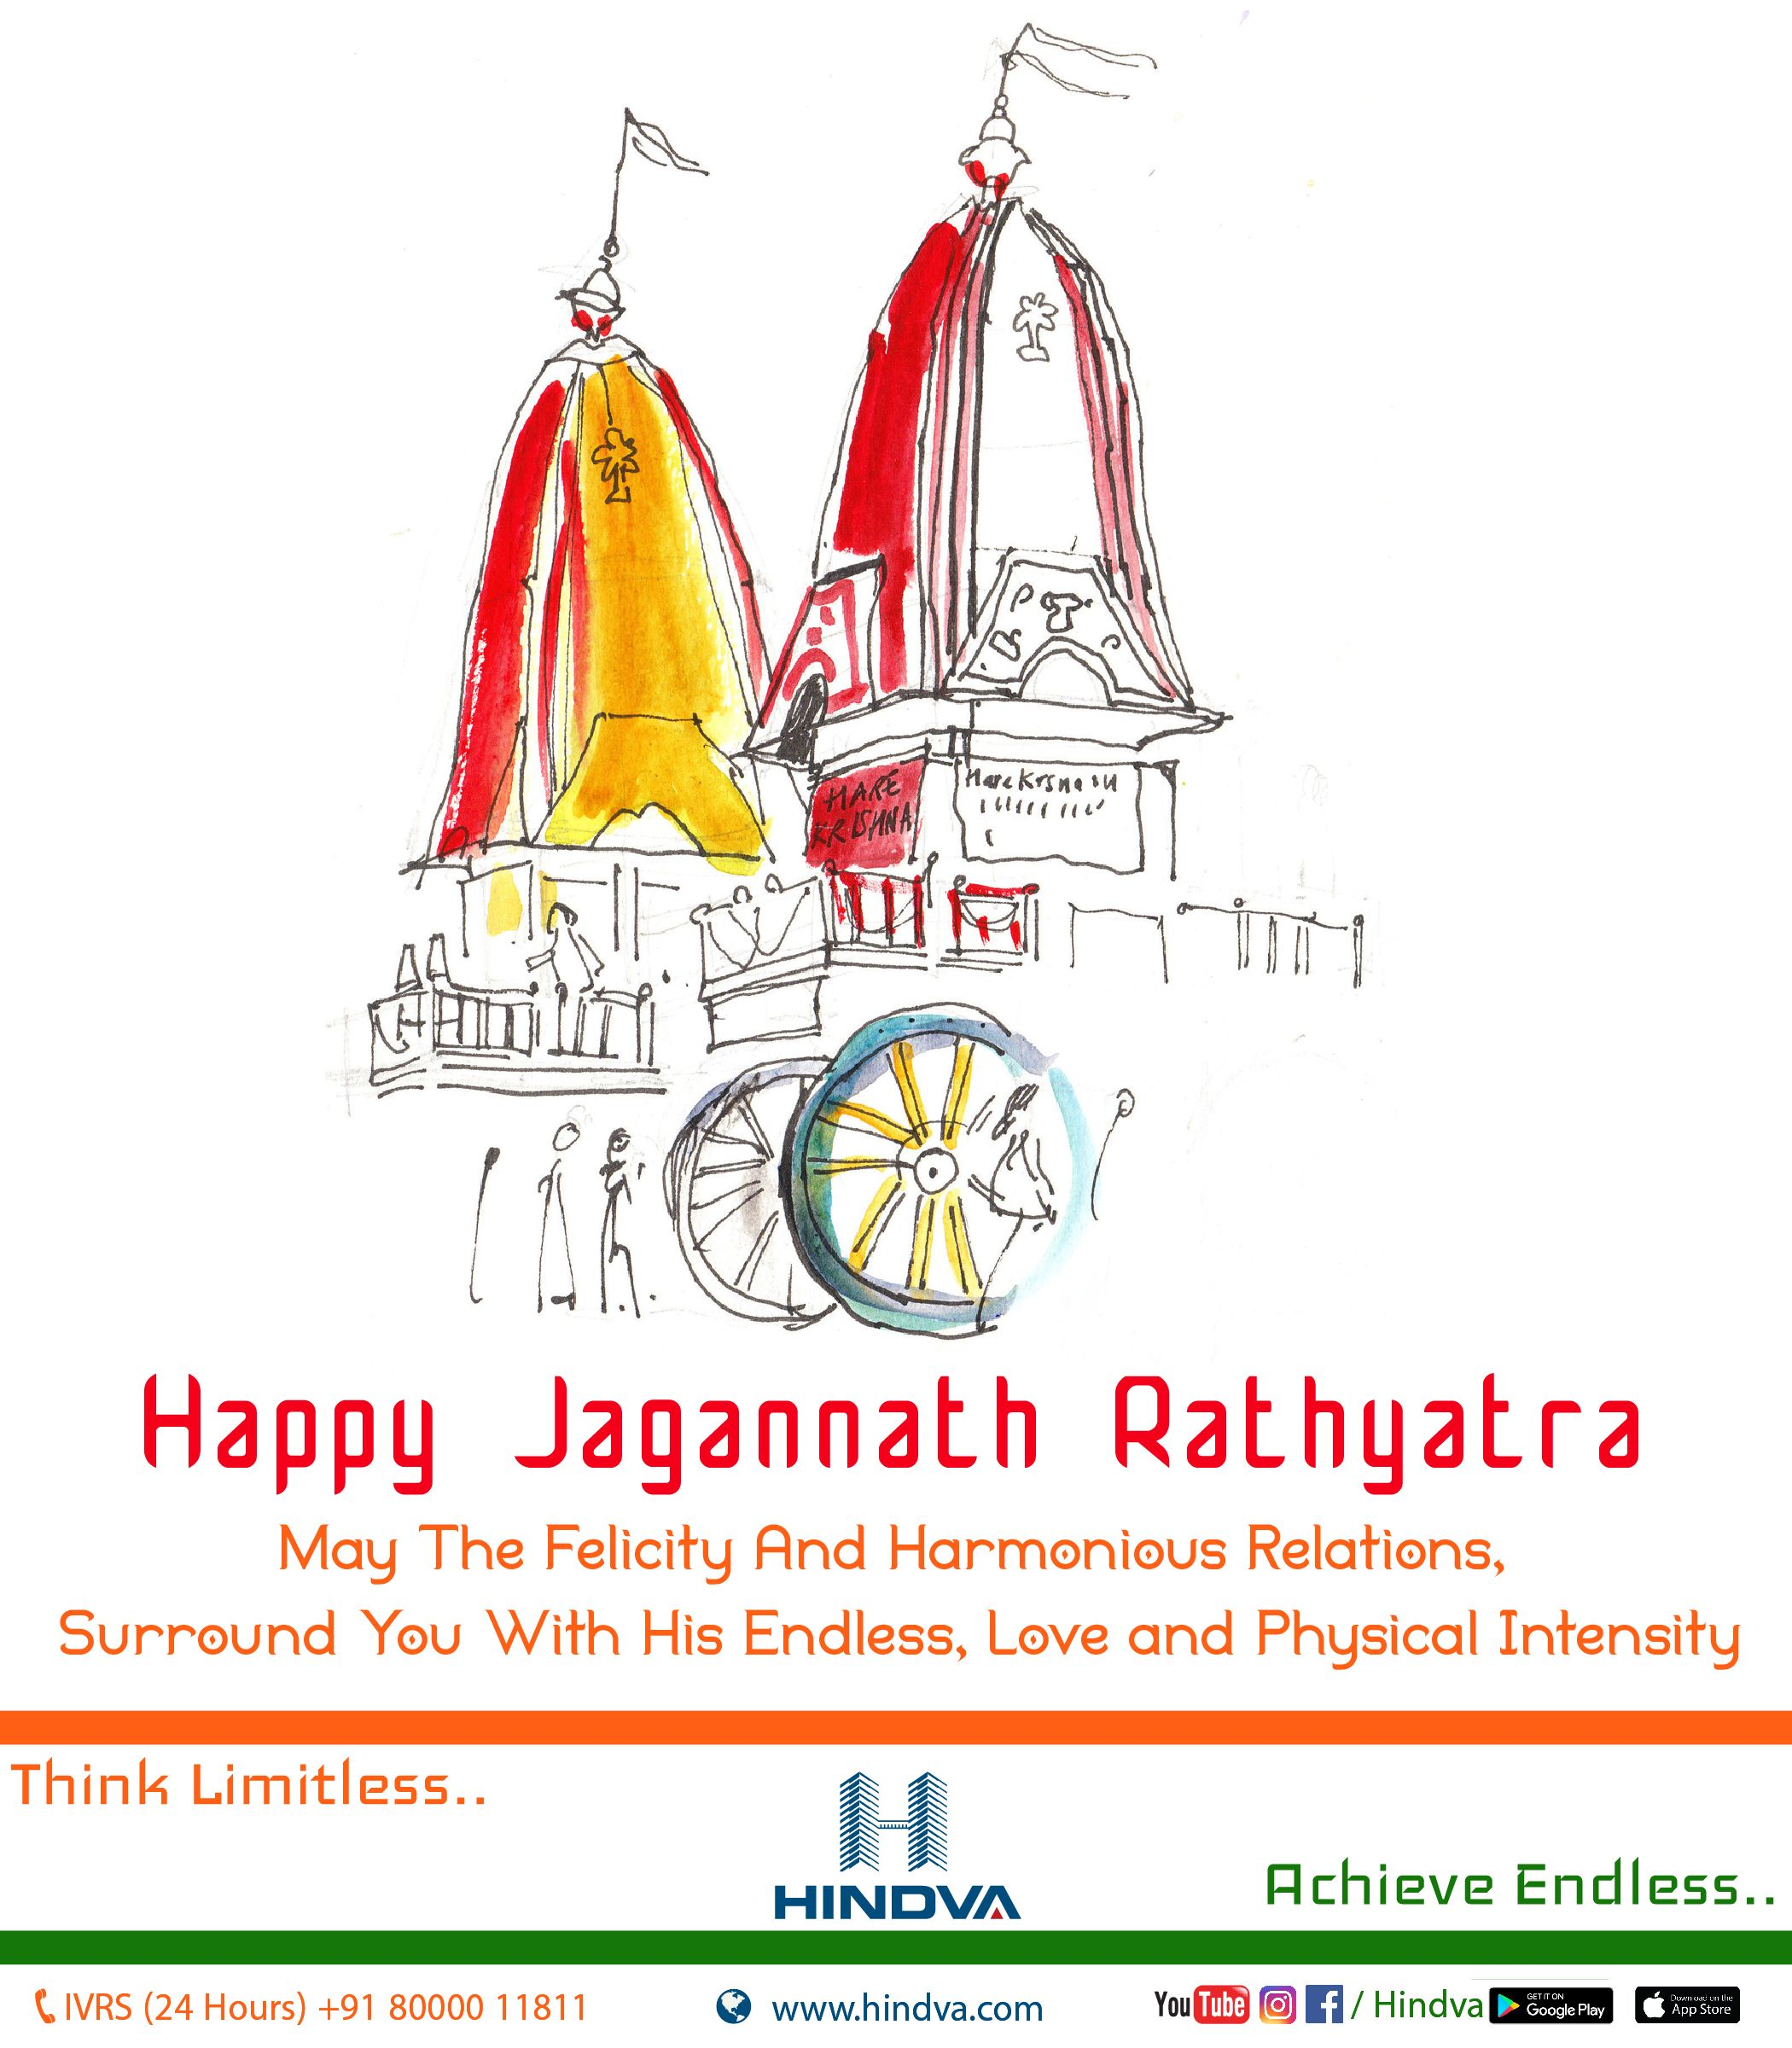 Wish You A Happy And Safe Jagannath Rath Yatra Jaijagannath